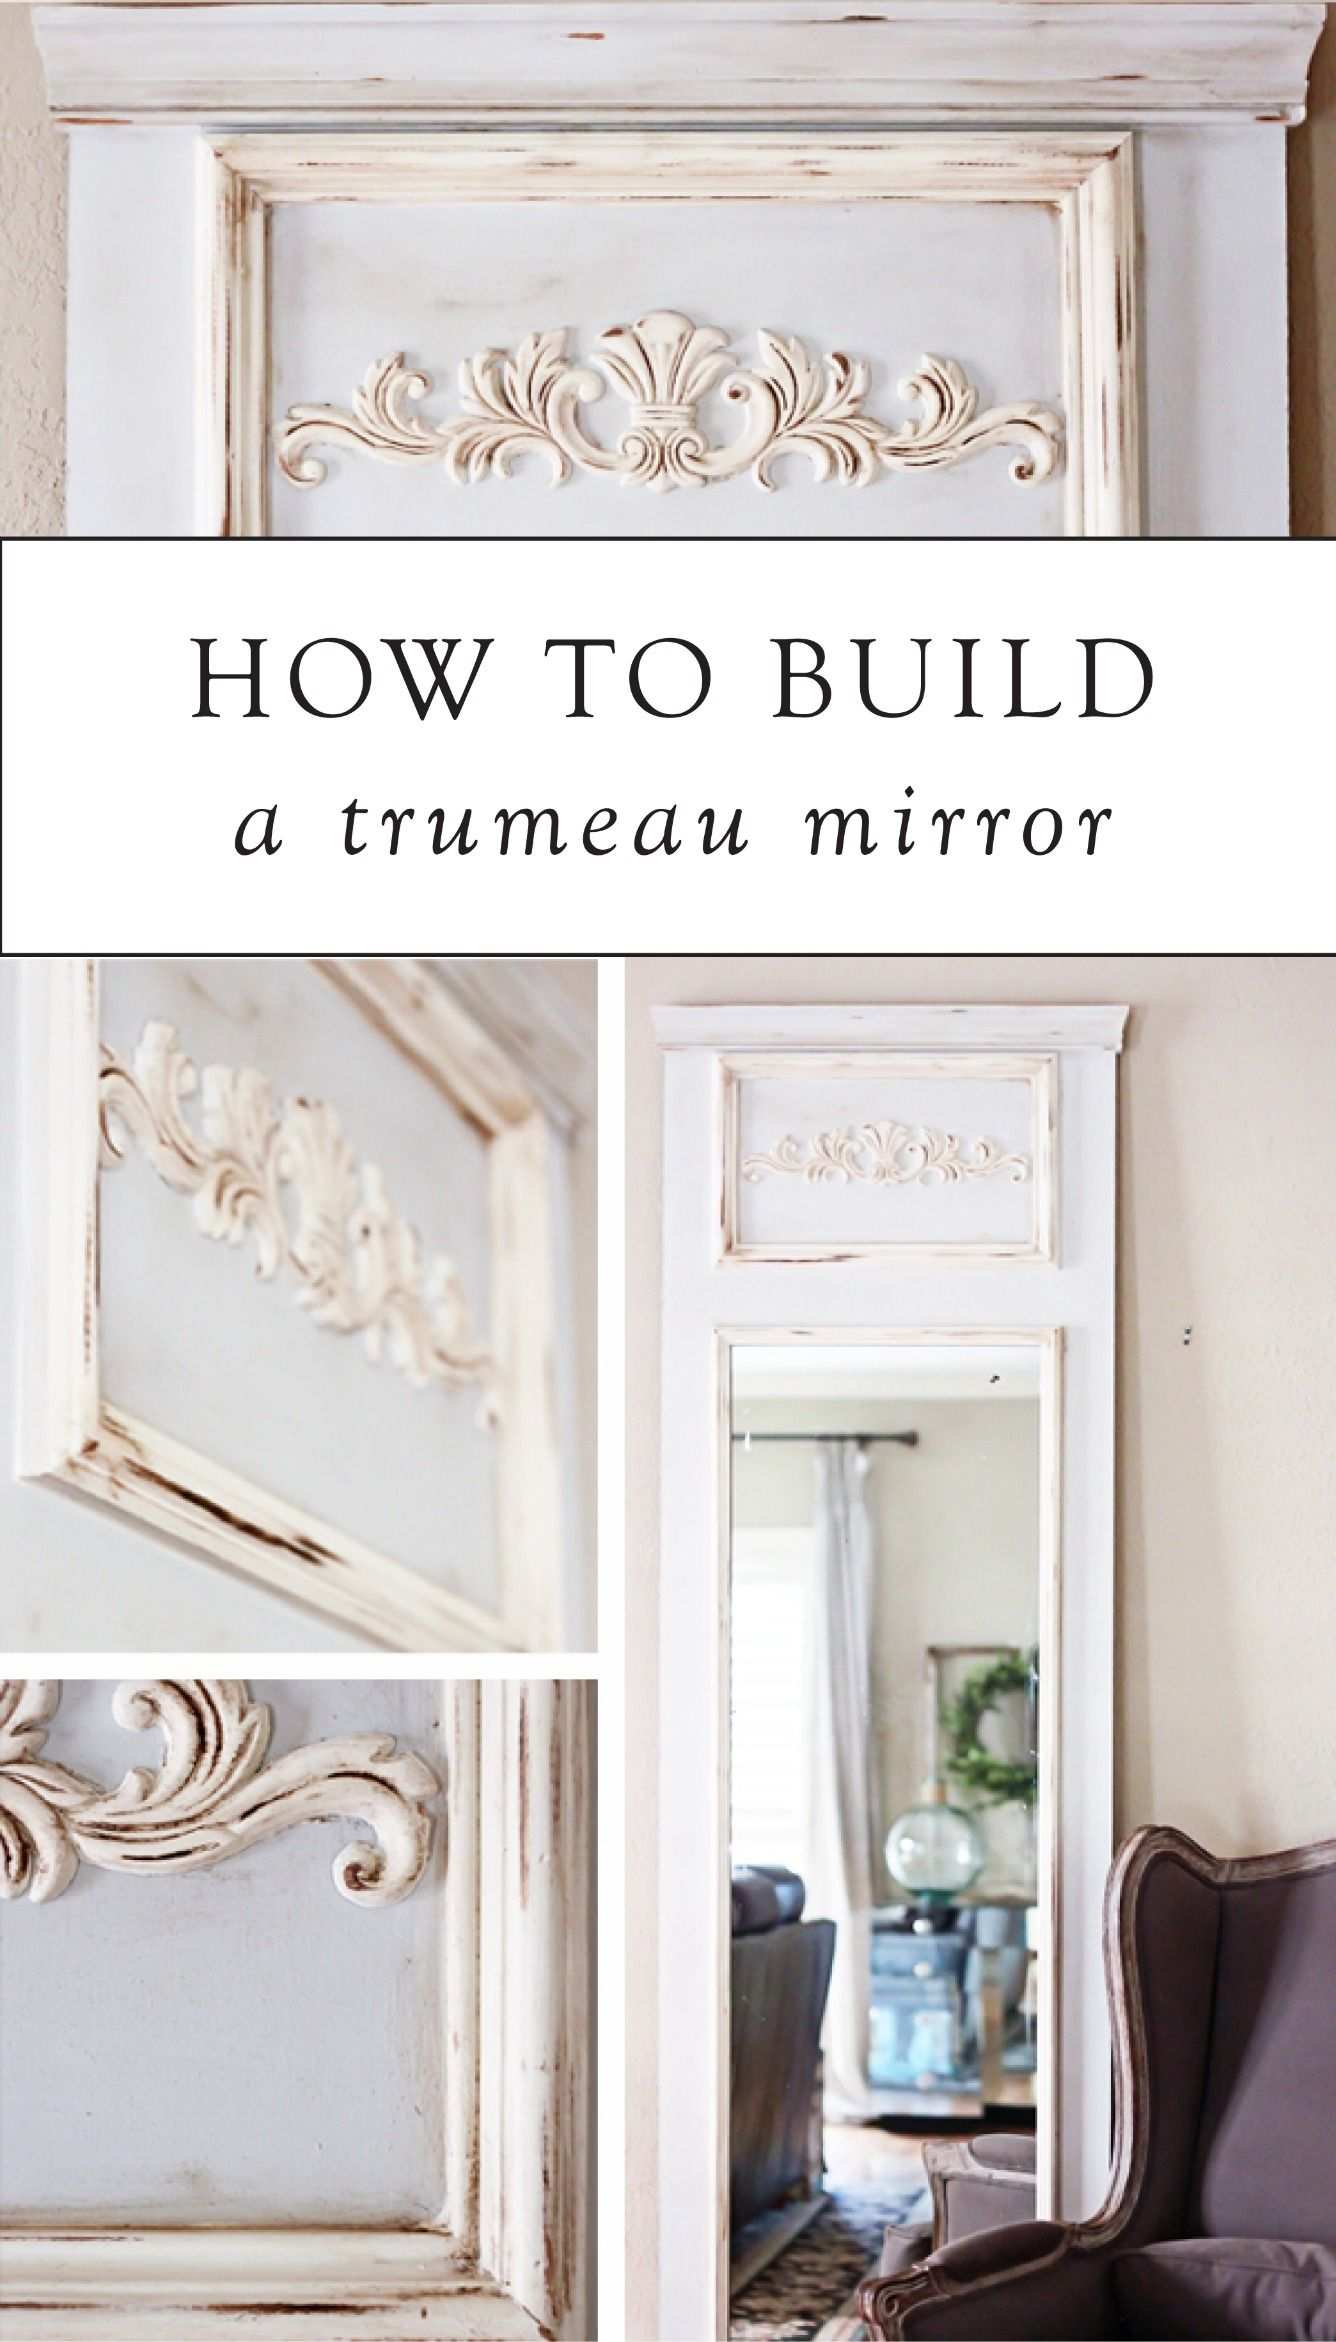 How to build a trumeau mirror rustic style elegant and room how to build a trumeau mirror amipublicfo Gallery